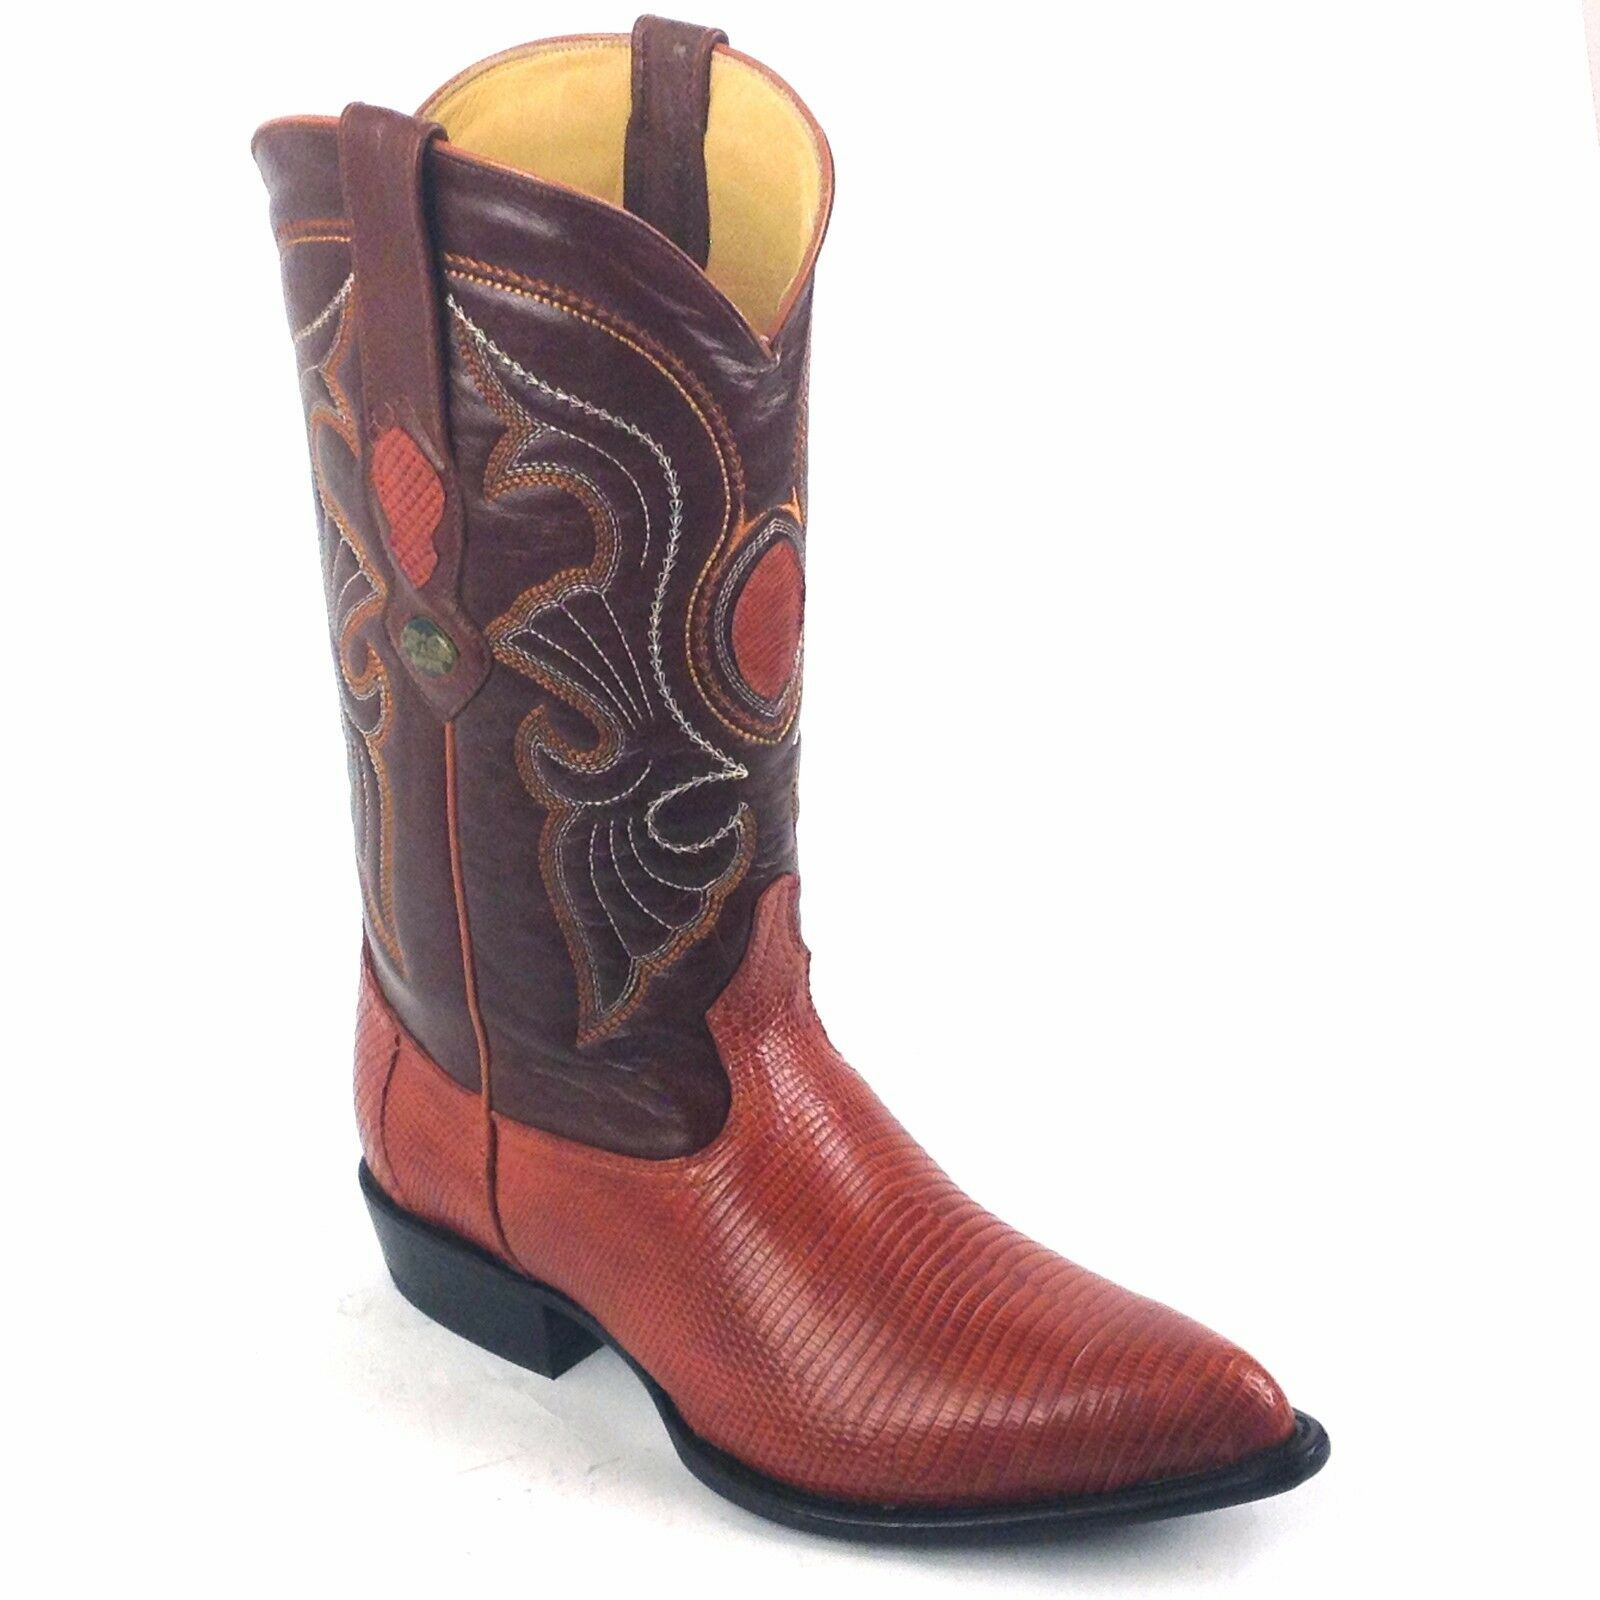 LOS ALTOS COGNAC LEATHER RING LIZARD J-TOE BOOT STYLE